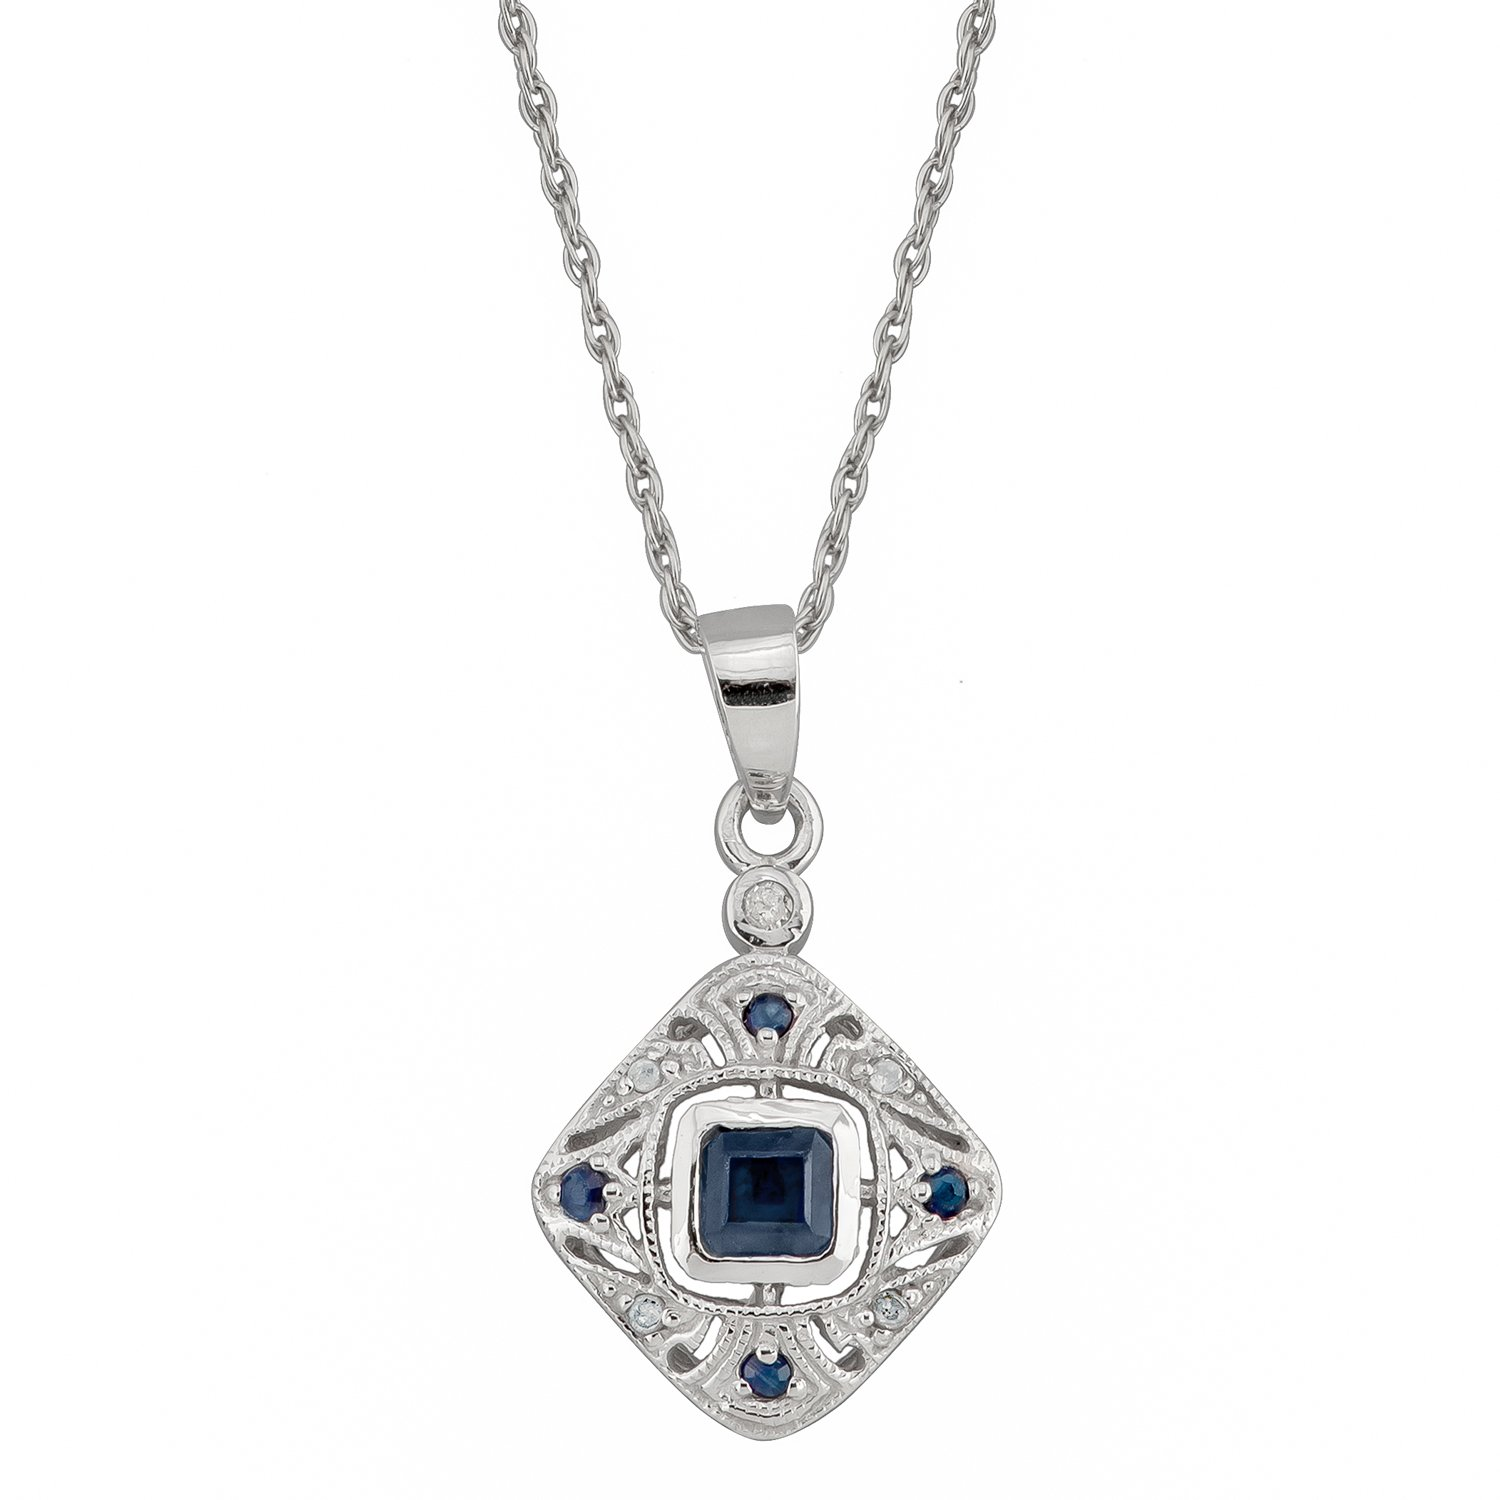 10k White Gold Vintage Style Sapphire and Diamond Pendant Necklace by Instagems